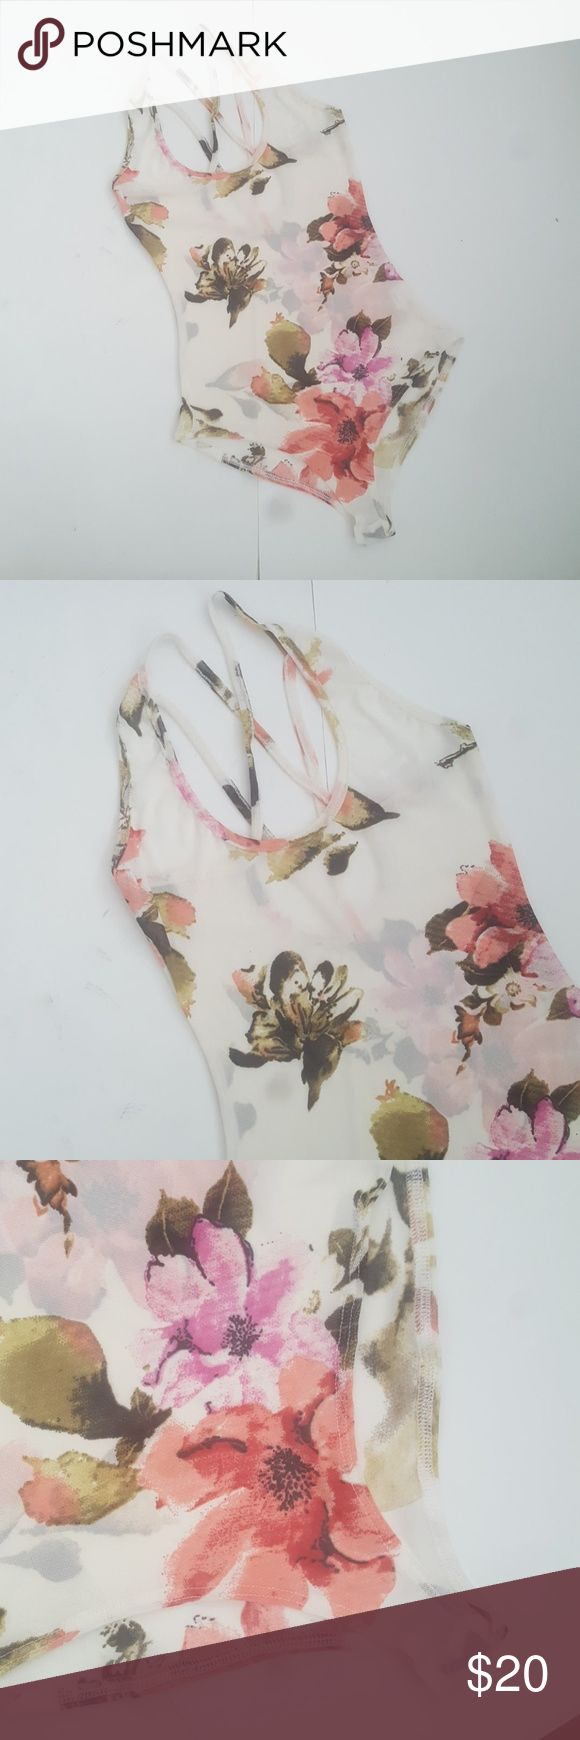 "LA Gypsy Sheer Mesh Floral Body Suit Cream colored body suit with colorful floral print. Completely sheer throughout. New without tags. Small bust 12 1/2"" Med bust 14 1/2"" Large bust 15 1/2"" 100% polyester. LA Gypsy Tops"